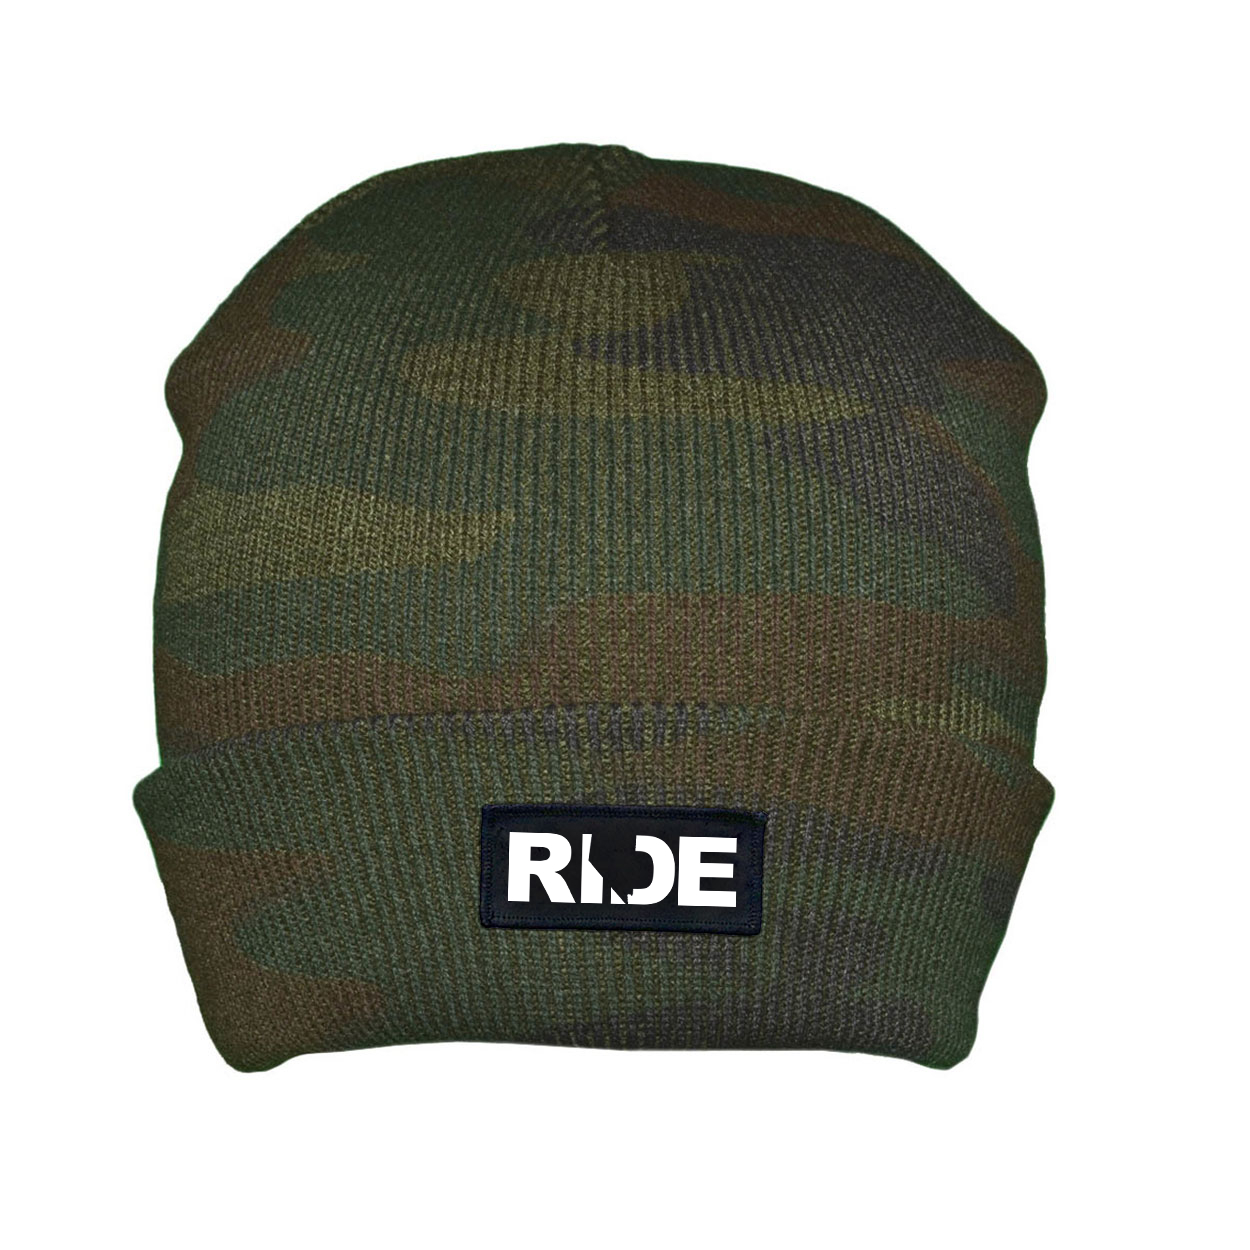 Ride Nevada Night Out Woven Patch Roll Up Skully Beanie Camo (White Logo)